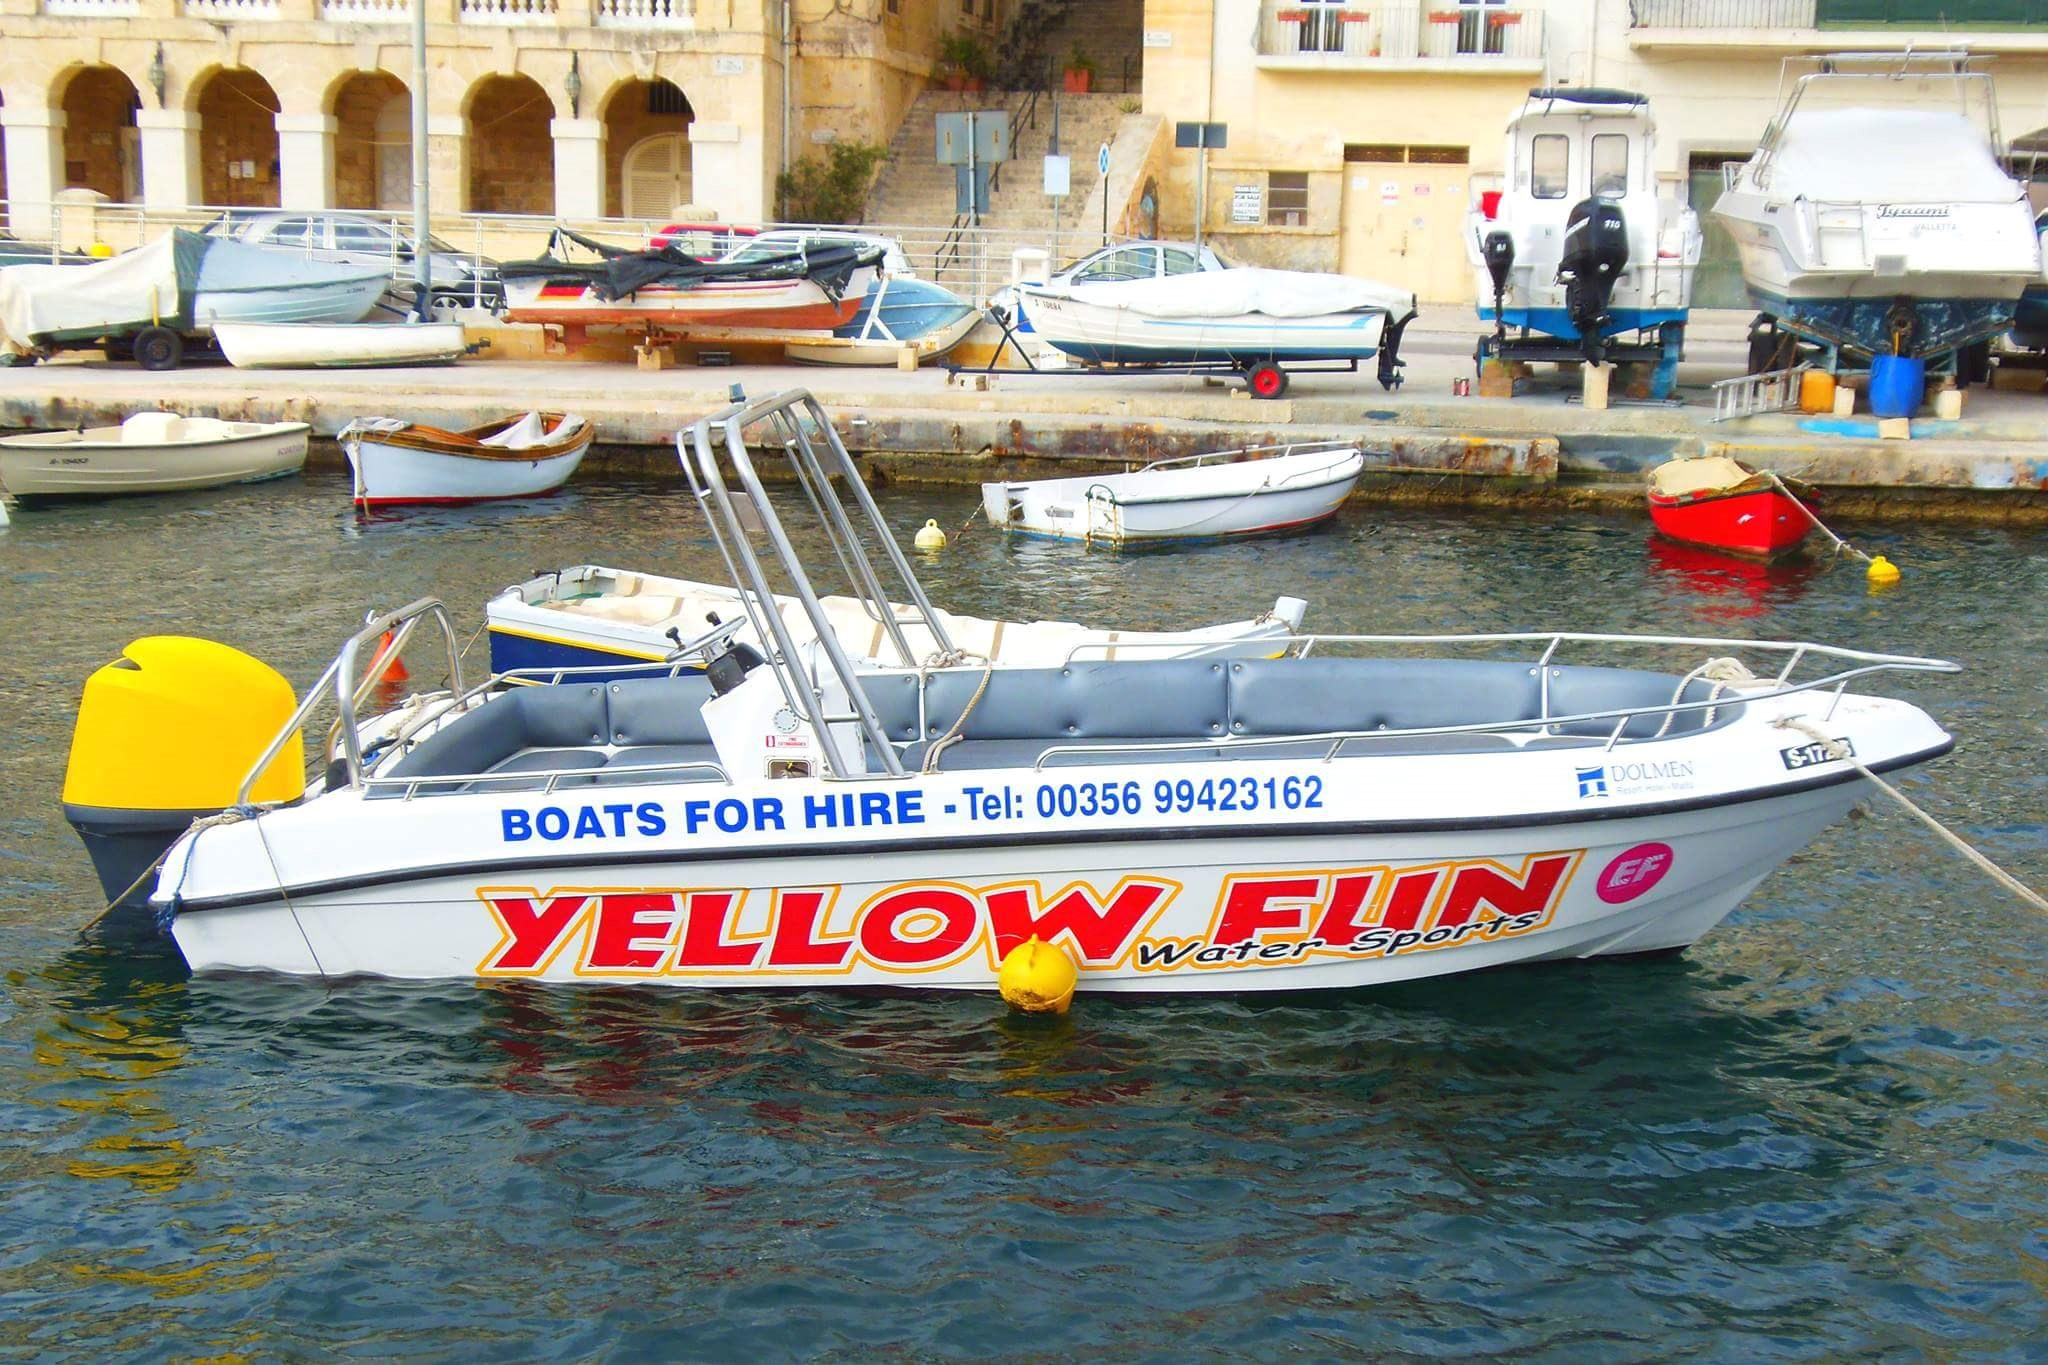 Rent / charter Motor Boat for Full Day Tour, Half Day Tour, Harbour Cruise, Private Charter & Team Building Activities in Malta & Gozo - Buccaneer Speed boat